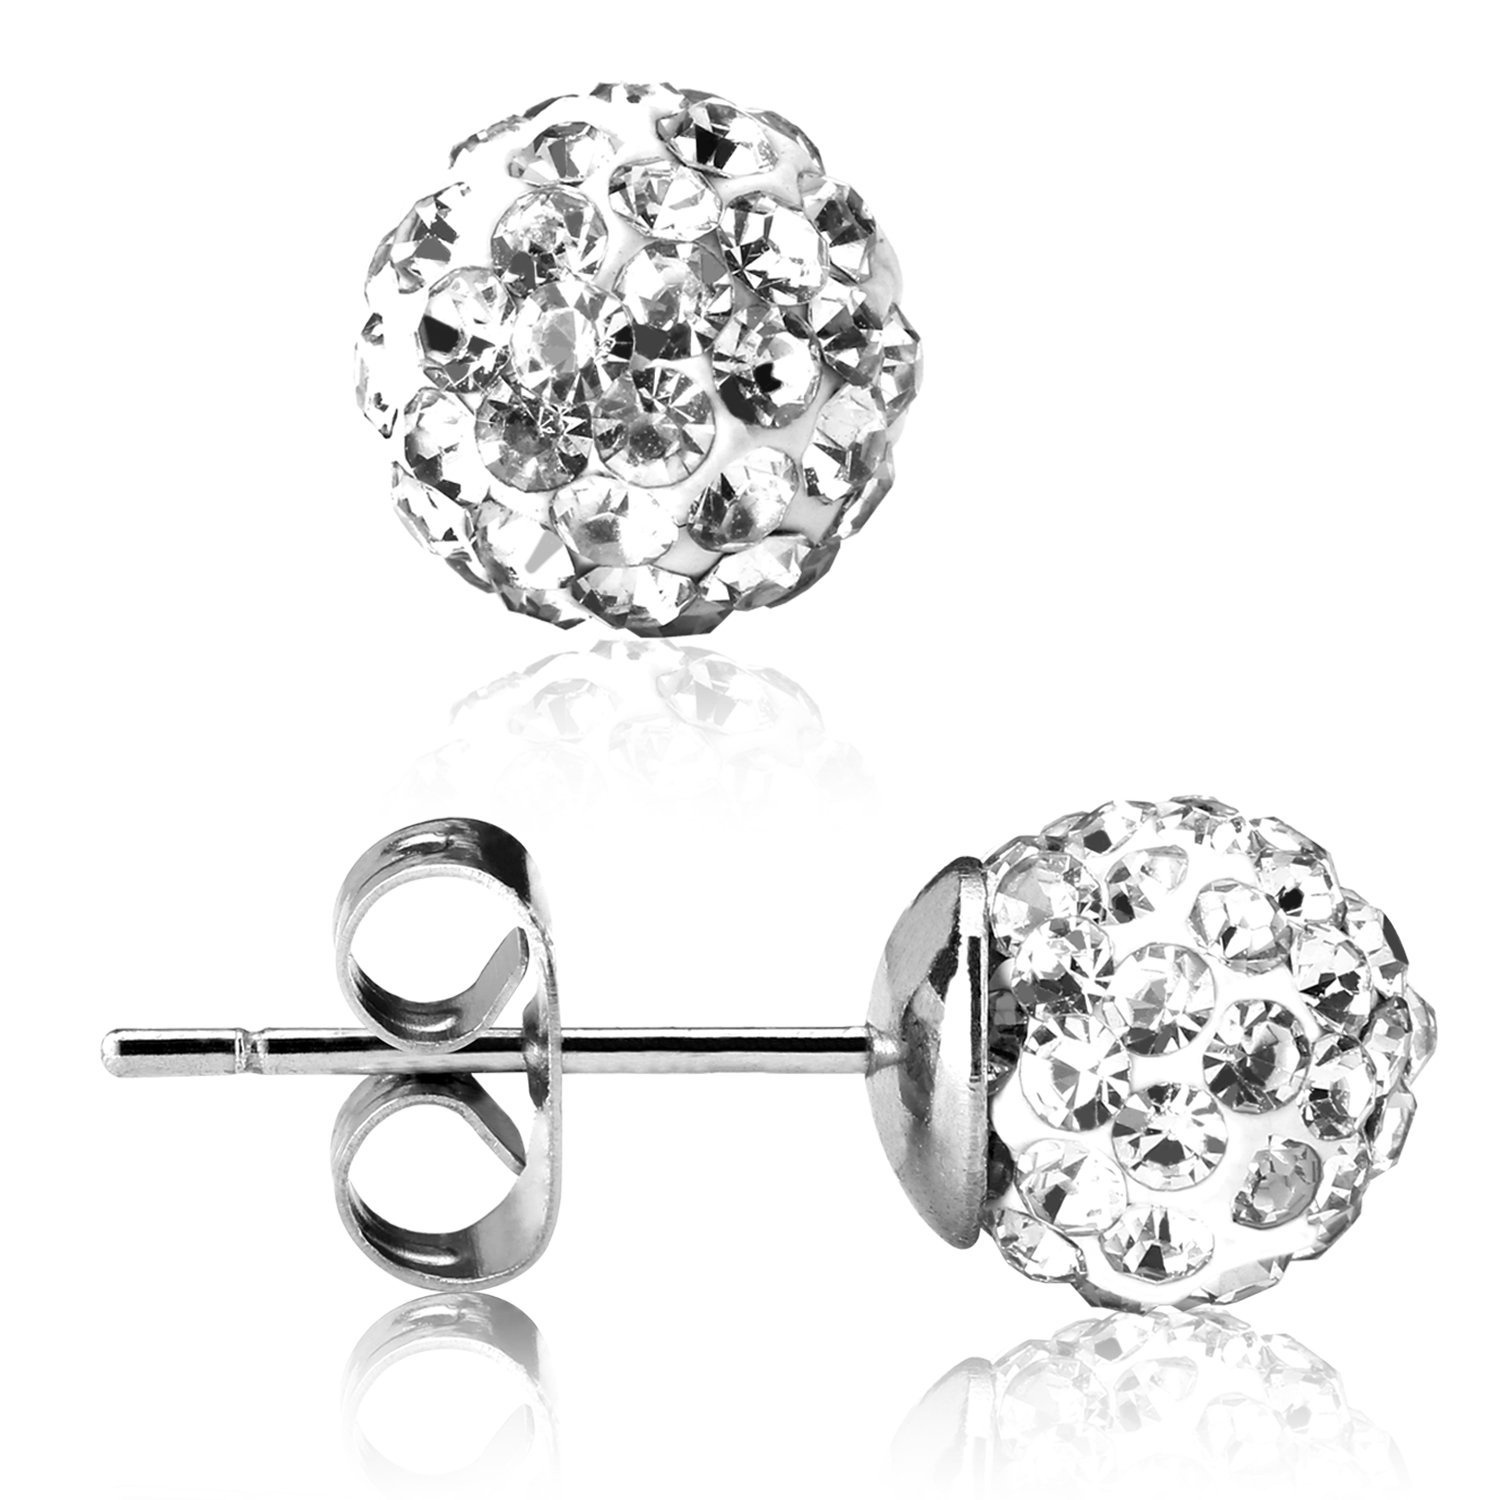 UHIBROS 316L Surgical Stainless Steel Stud earrings Round Ball Diamond Ear Stub